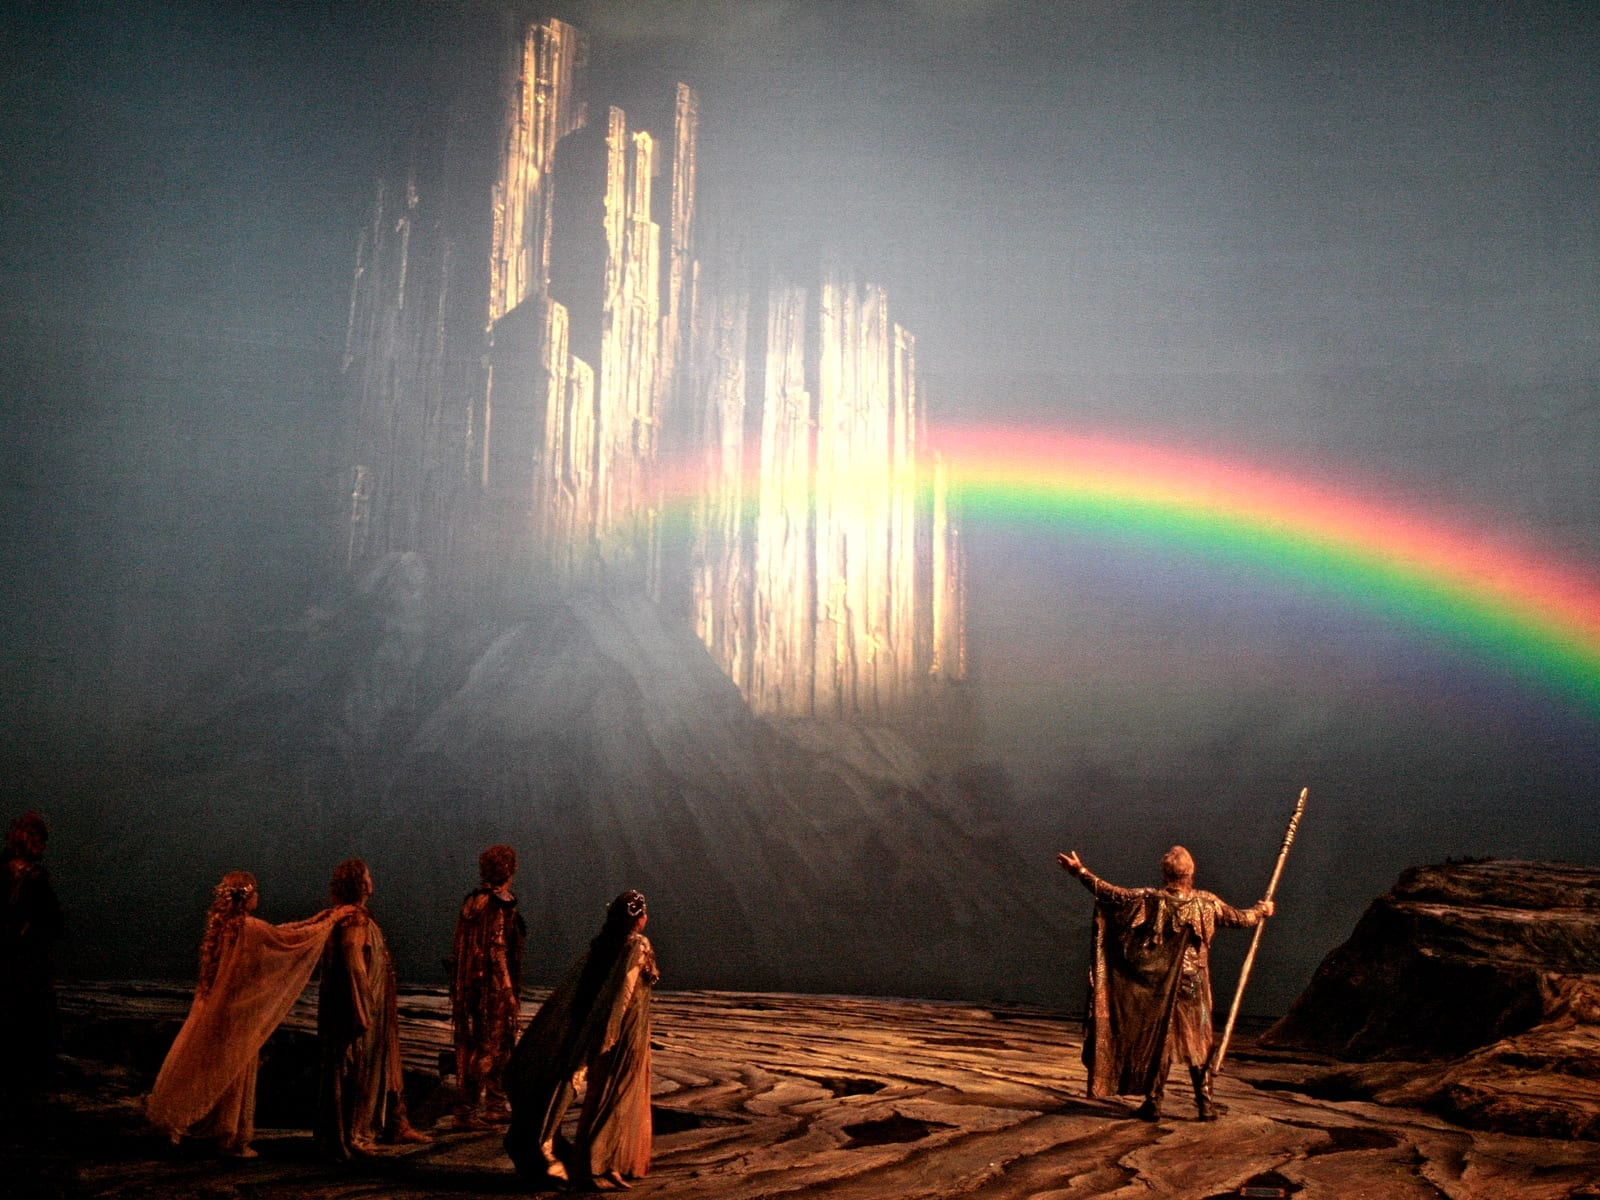 The Met's Stream of Wagner's 'Ring' Offers a Chance to Consider the Meaning of Life